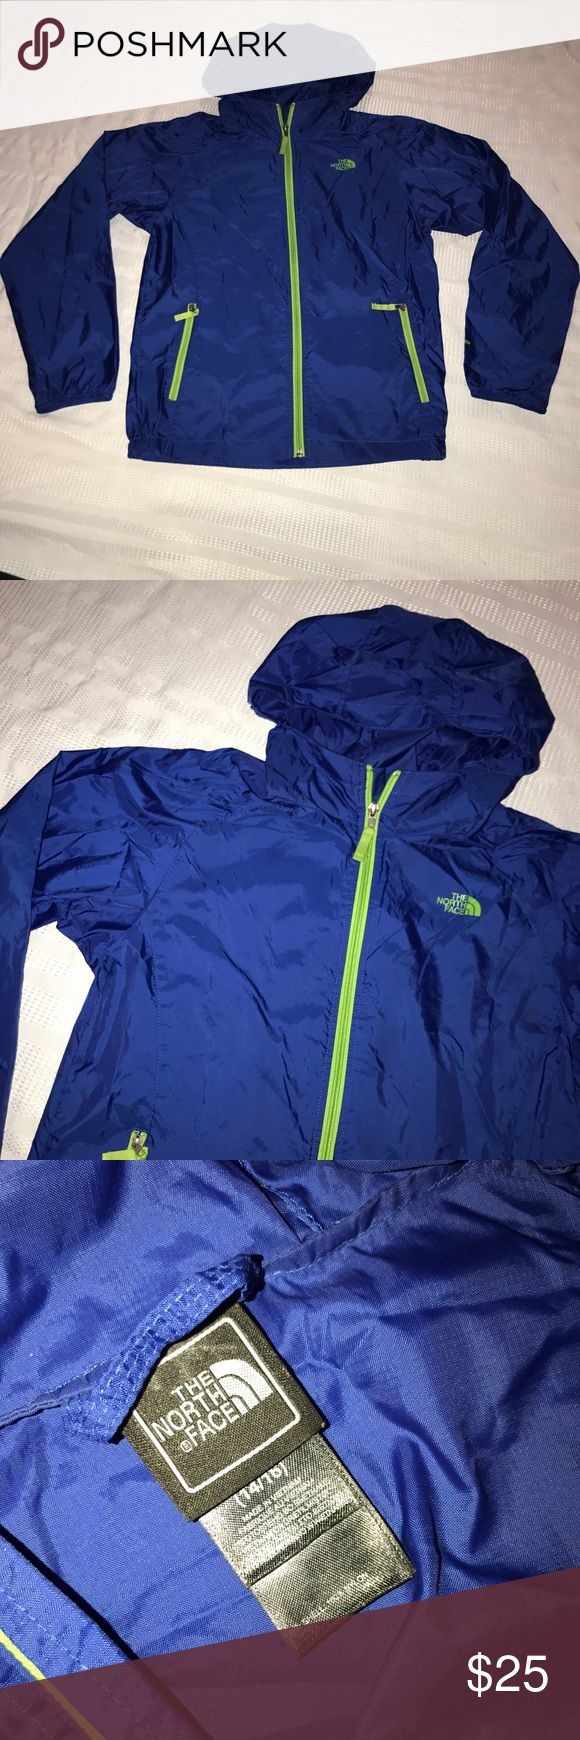 """The North Face hydrenalite windbreaker jacket sz L Nice light weight jacket that comes with a full zip up front, a hood and two side zip pockets. It has been worn before and is still in excellent condition. The chest measurement is 37"""", sleeve length is 23.5"""" and the jacket length is 23"""" The North Face Jackets & Coats"""